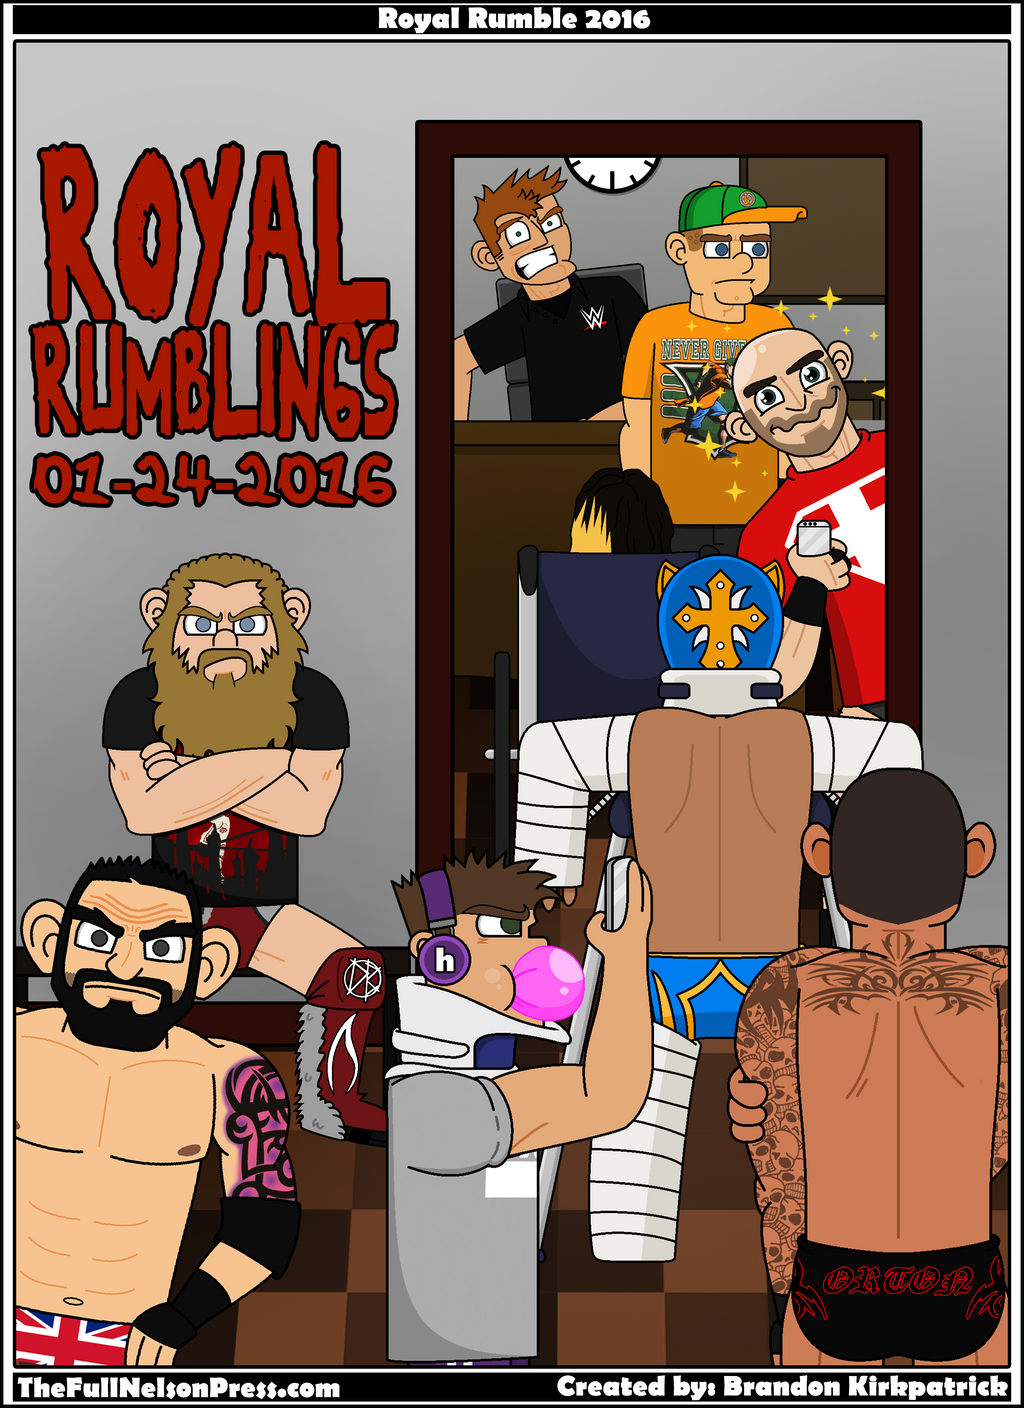 WWE Royal Rumble 2016 by TheFullNelsonPress